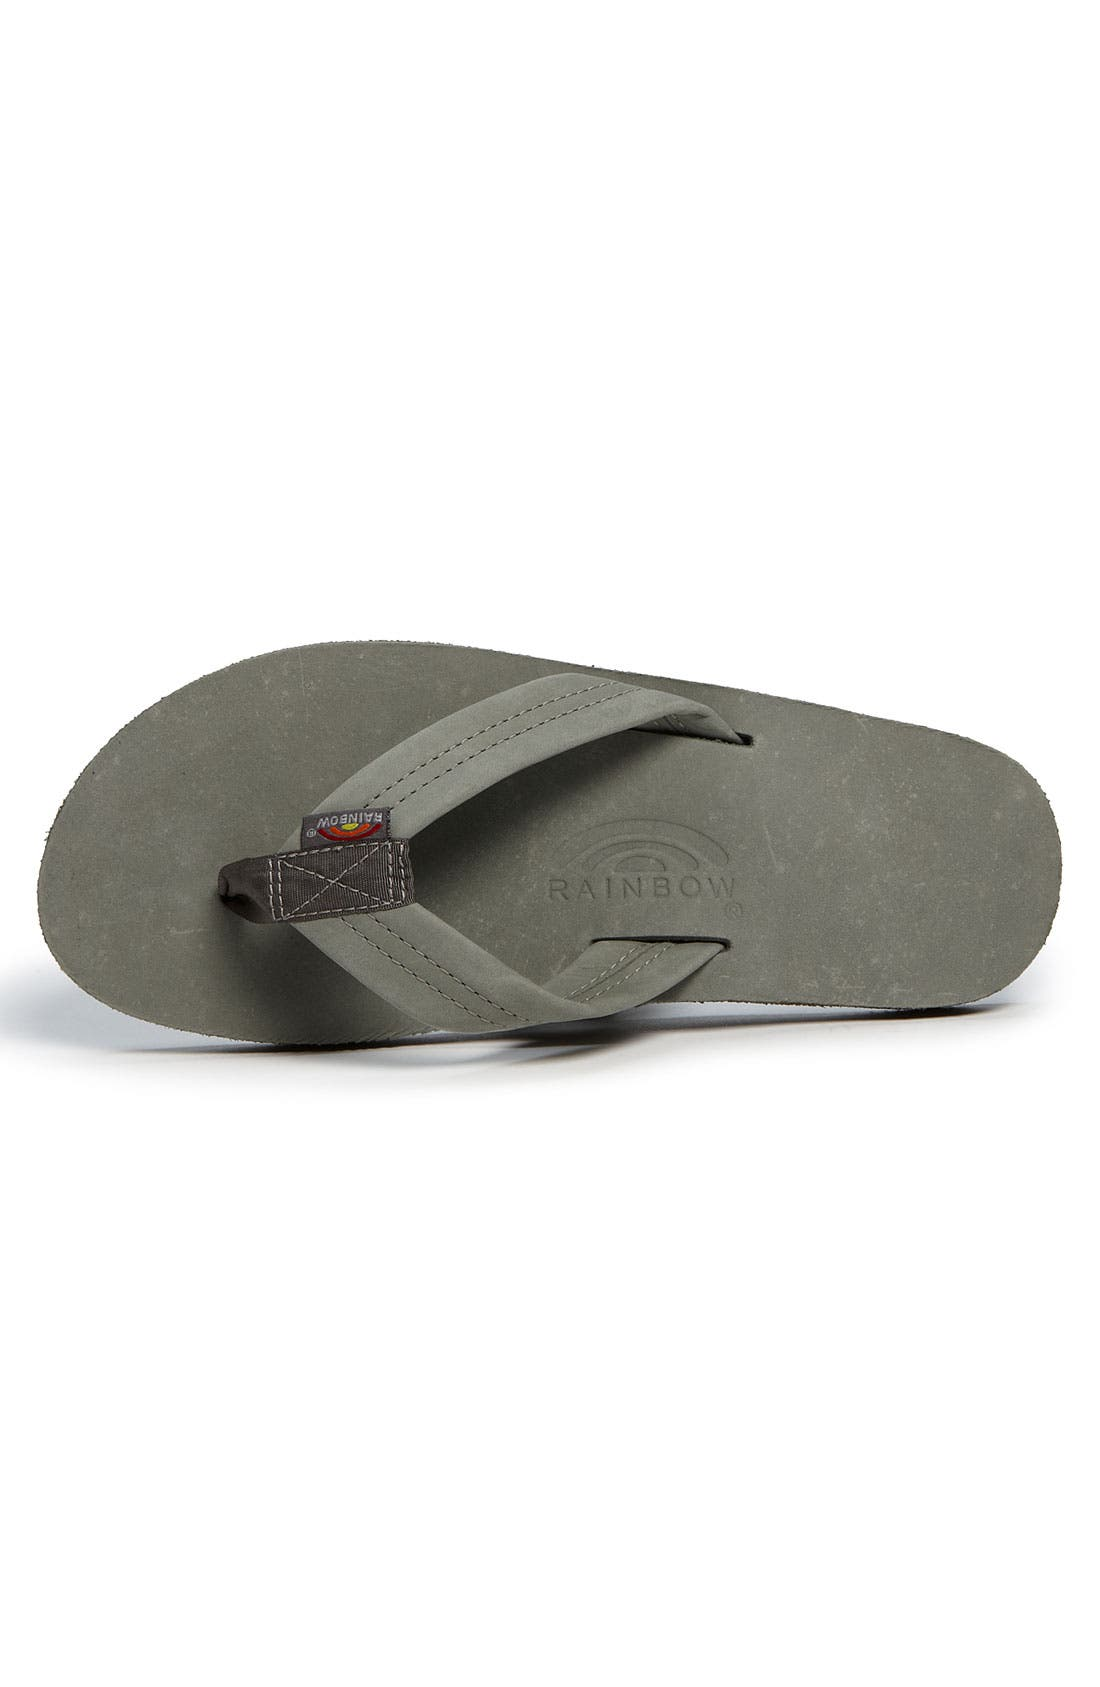 '301Alts' Sandal,                             Alternate thumbnail 3, color,                             Grey